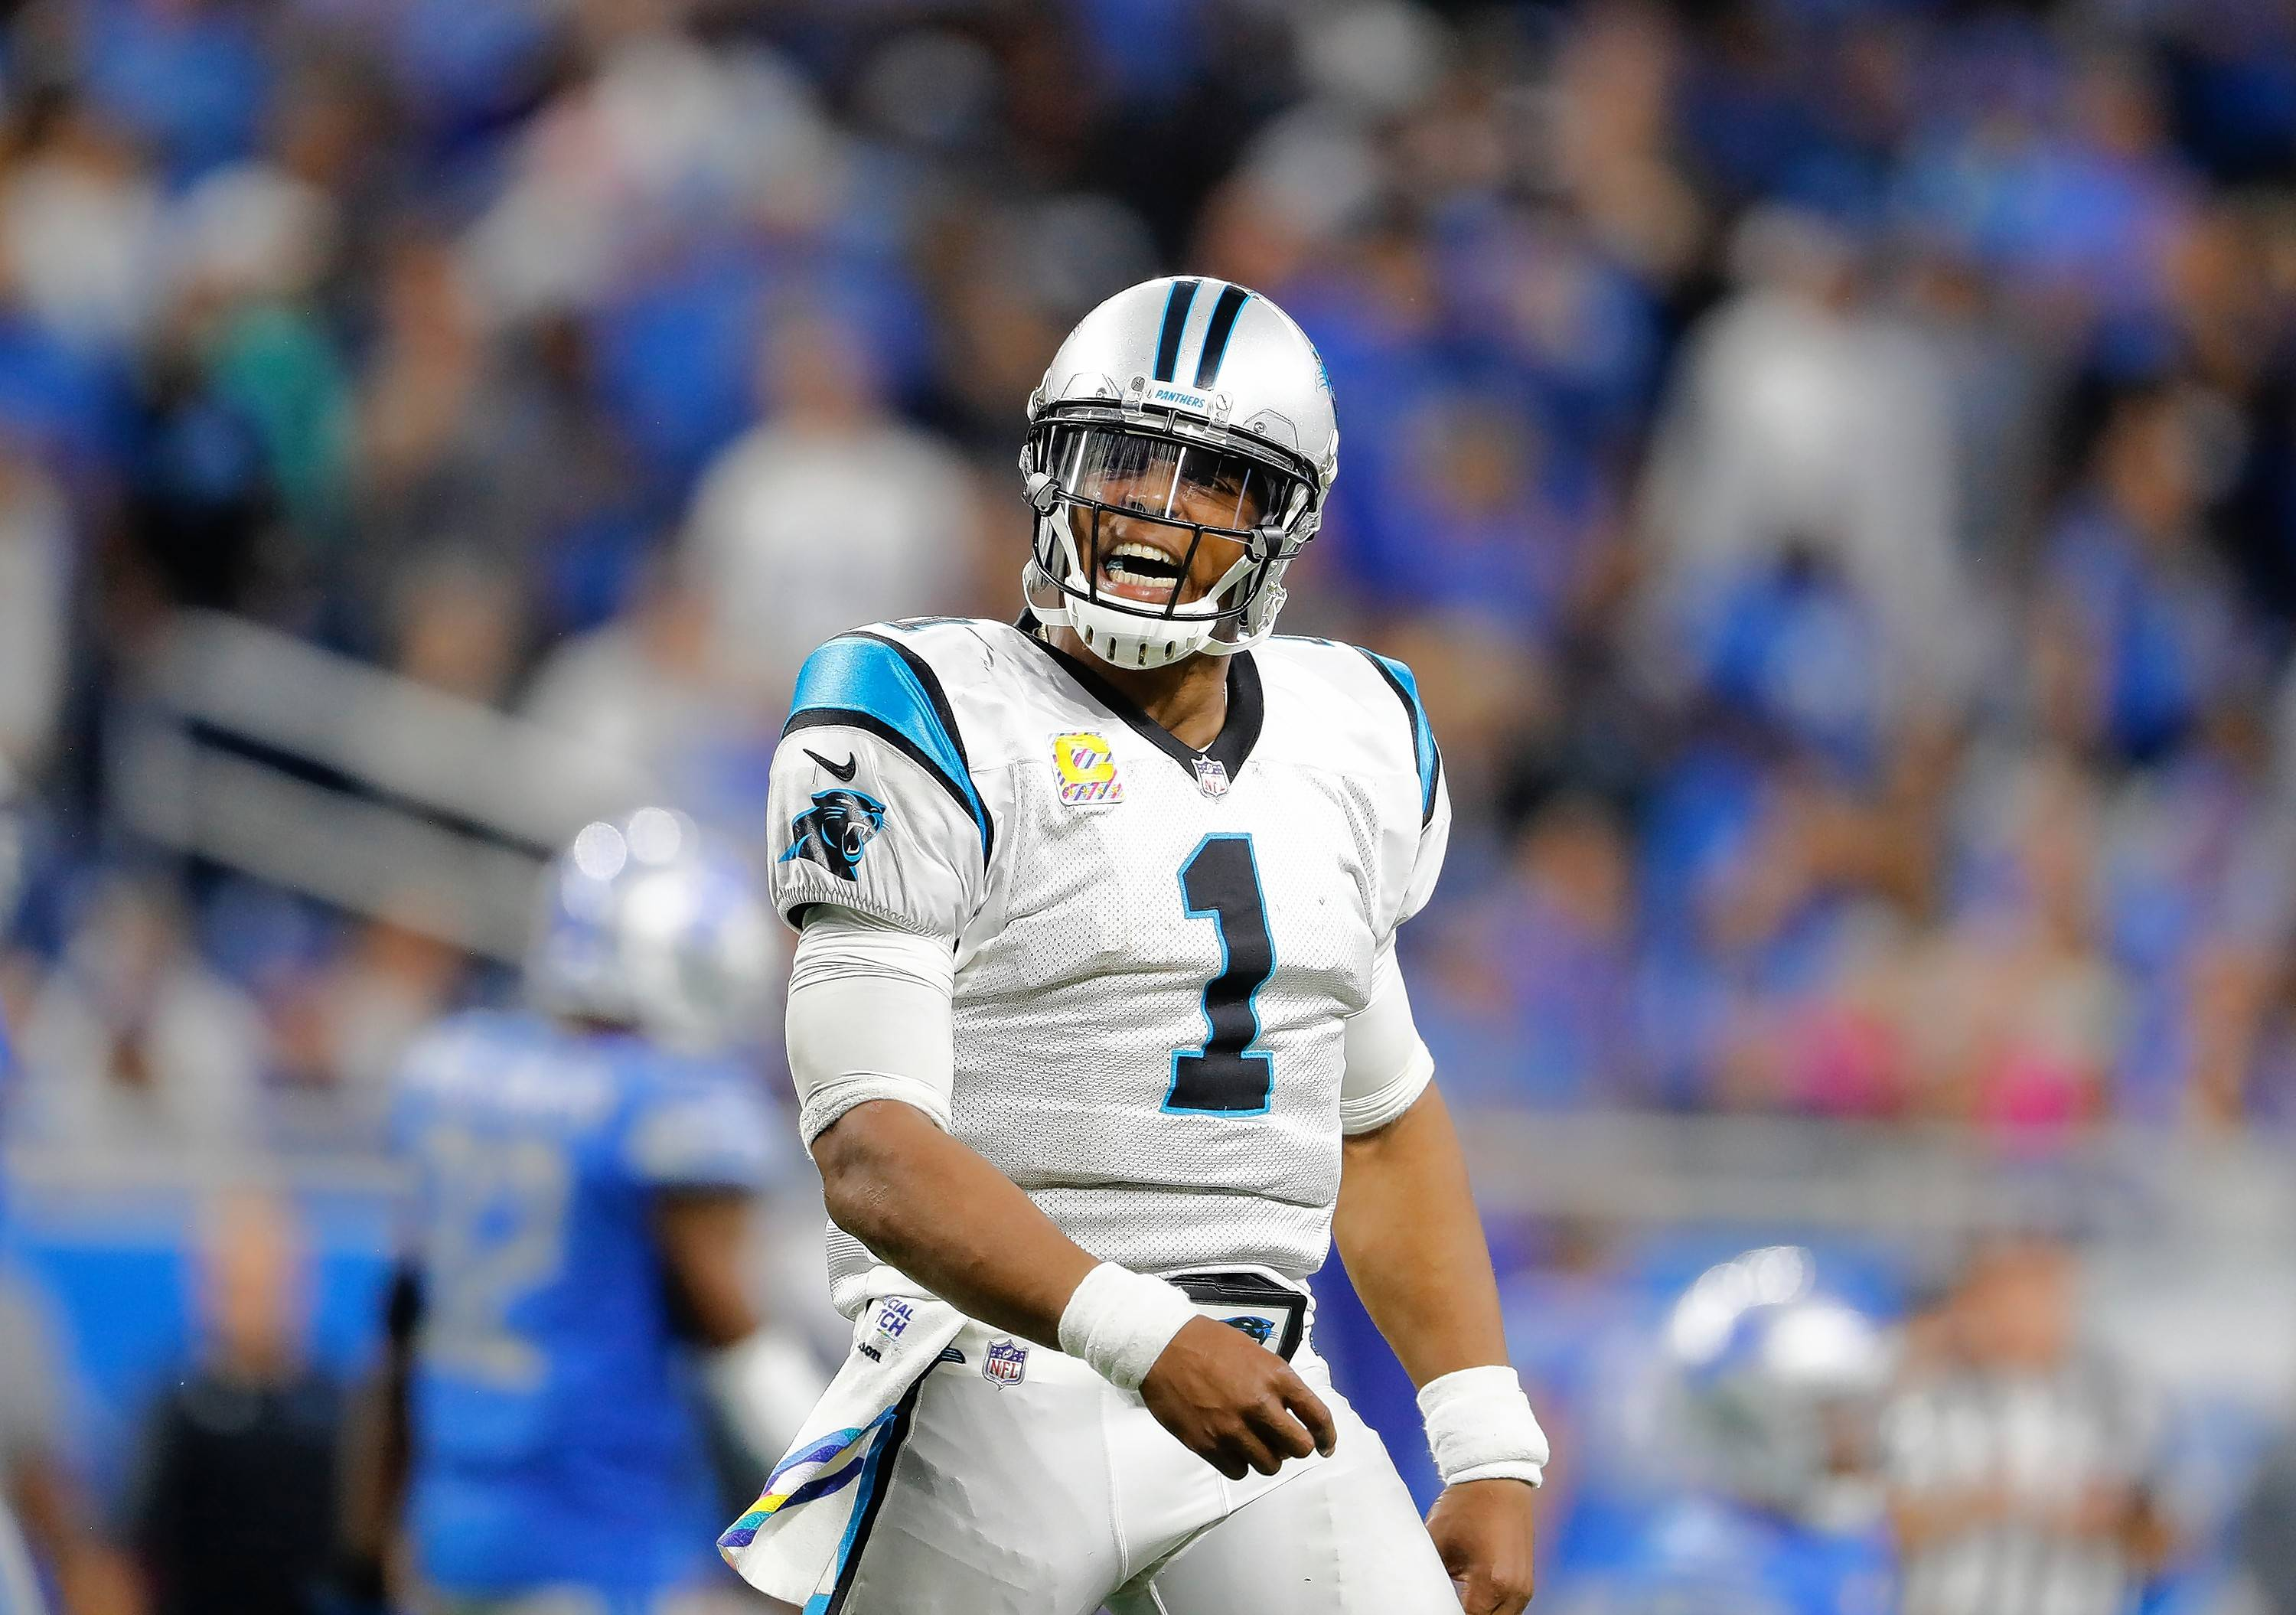 It's still uncertain whether the Carolina Panthers are closer to last year's 6-10 disappointment or the 2015 Super Bowl team that went 15-1. The Bears know quarterback Cam Newton, the 2015 league MVP, will have the most to say about which direction his team takes.